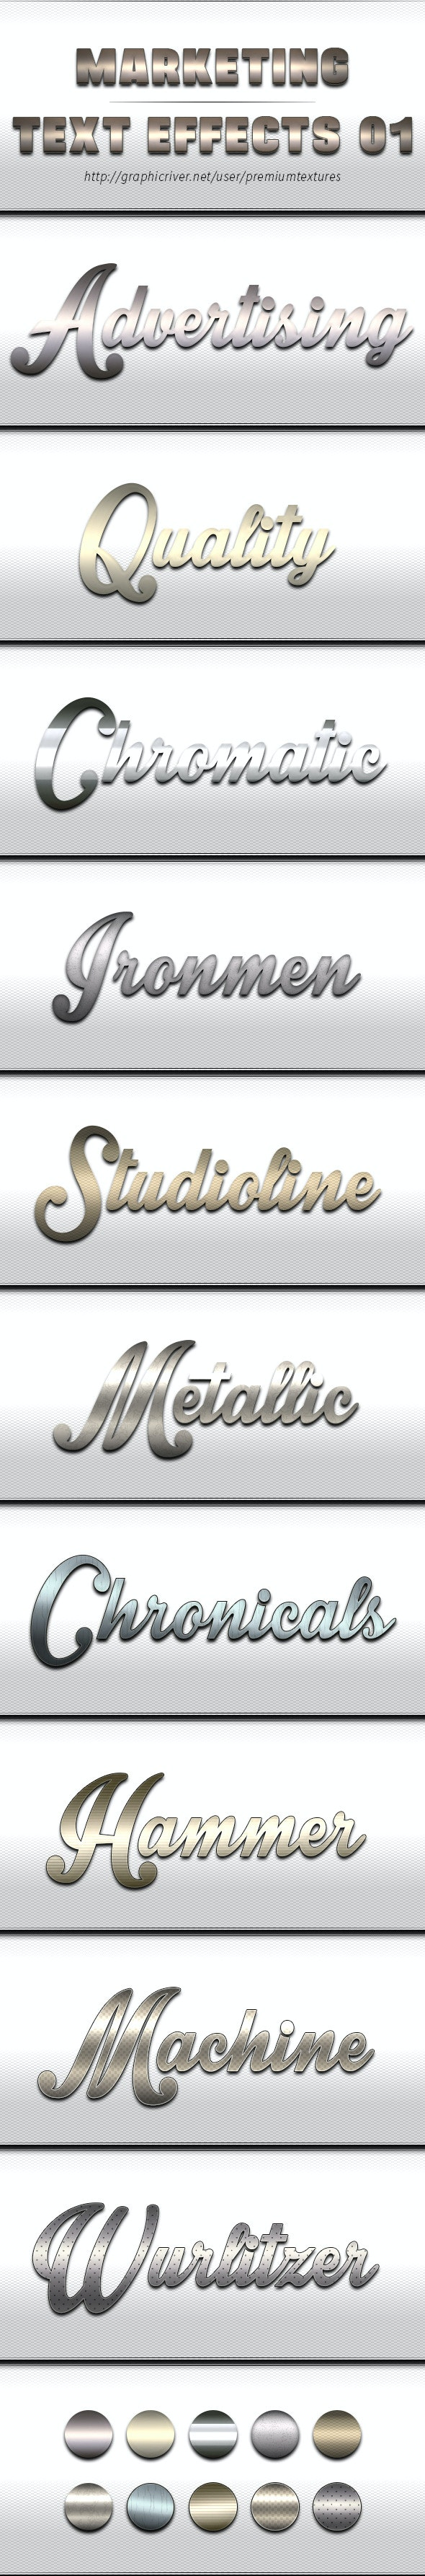 Marketing Text Effects 01 - Text Effects Styles